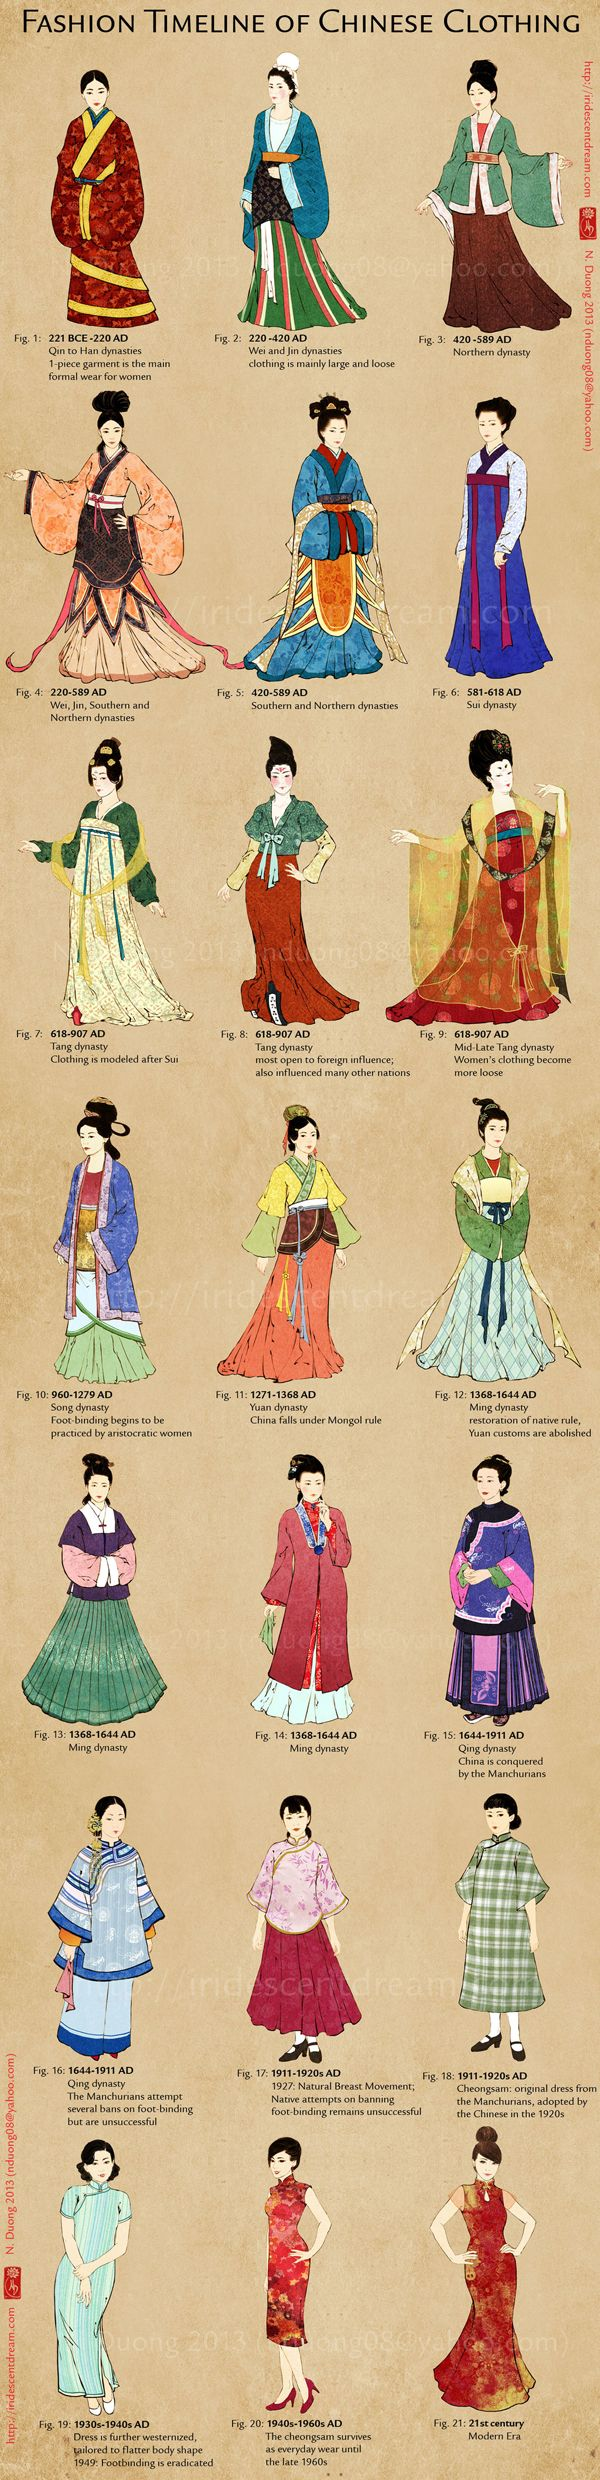 Funny Pictures About Evolution Of Chinese Clothing Oh And Cool Pics Also